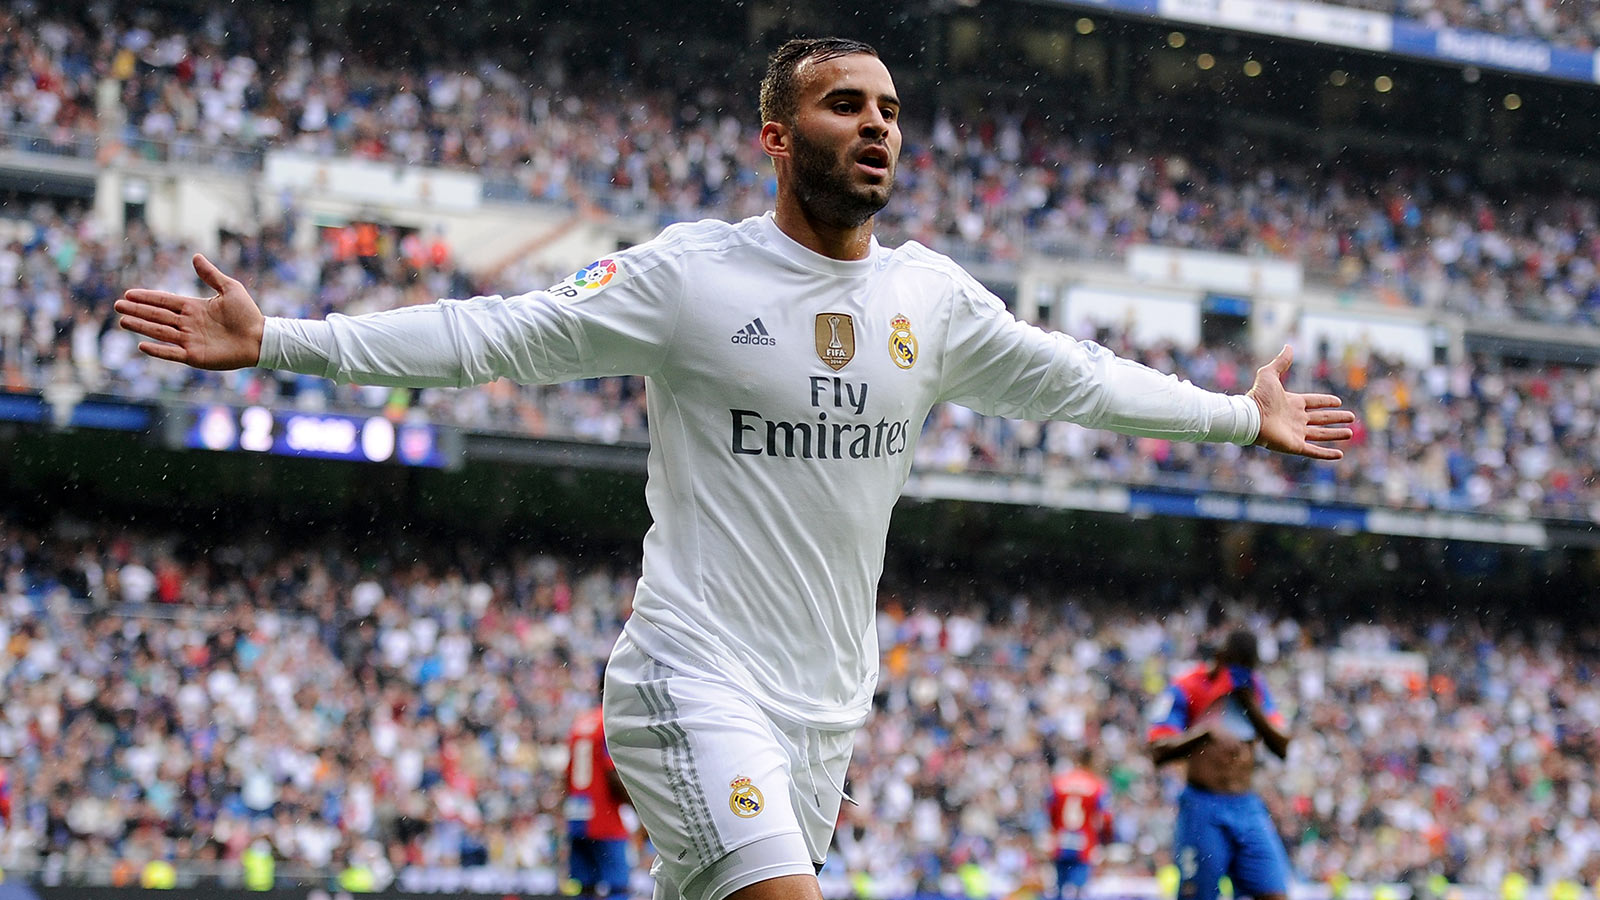 Liverpool boss Klopp targets Real Madrid striker Jese